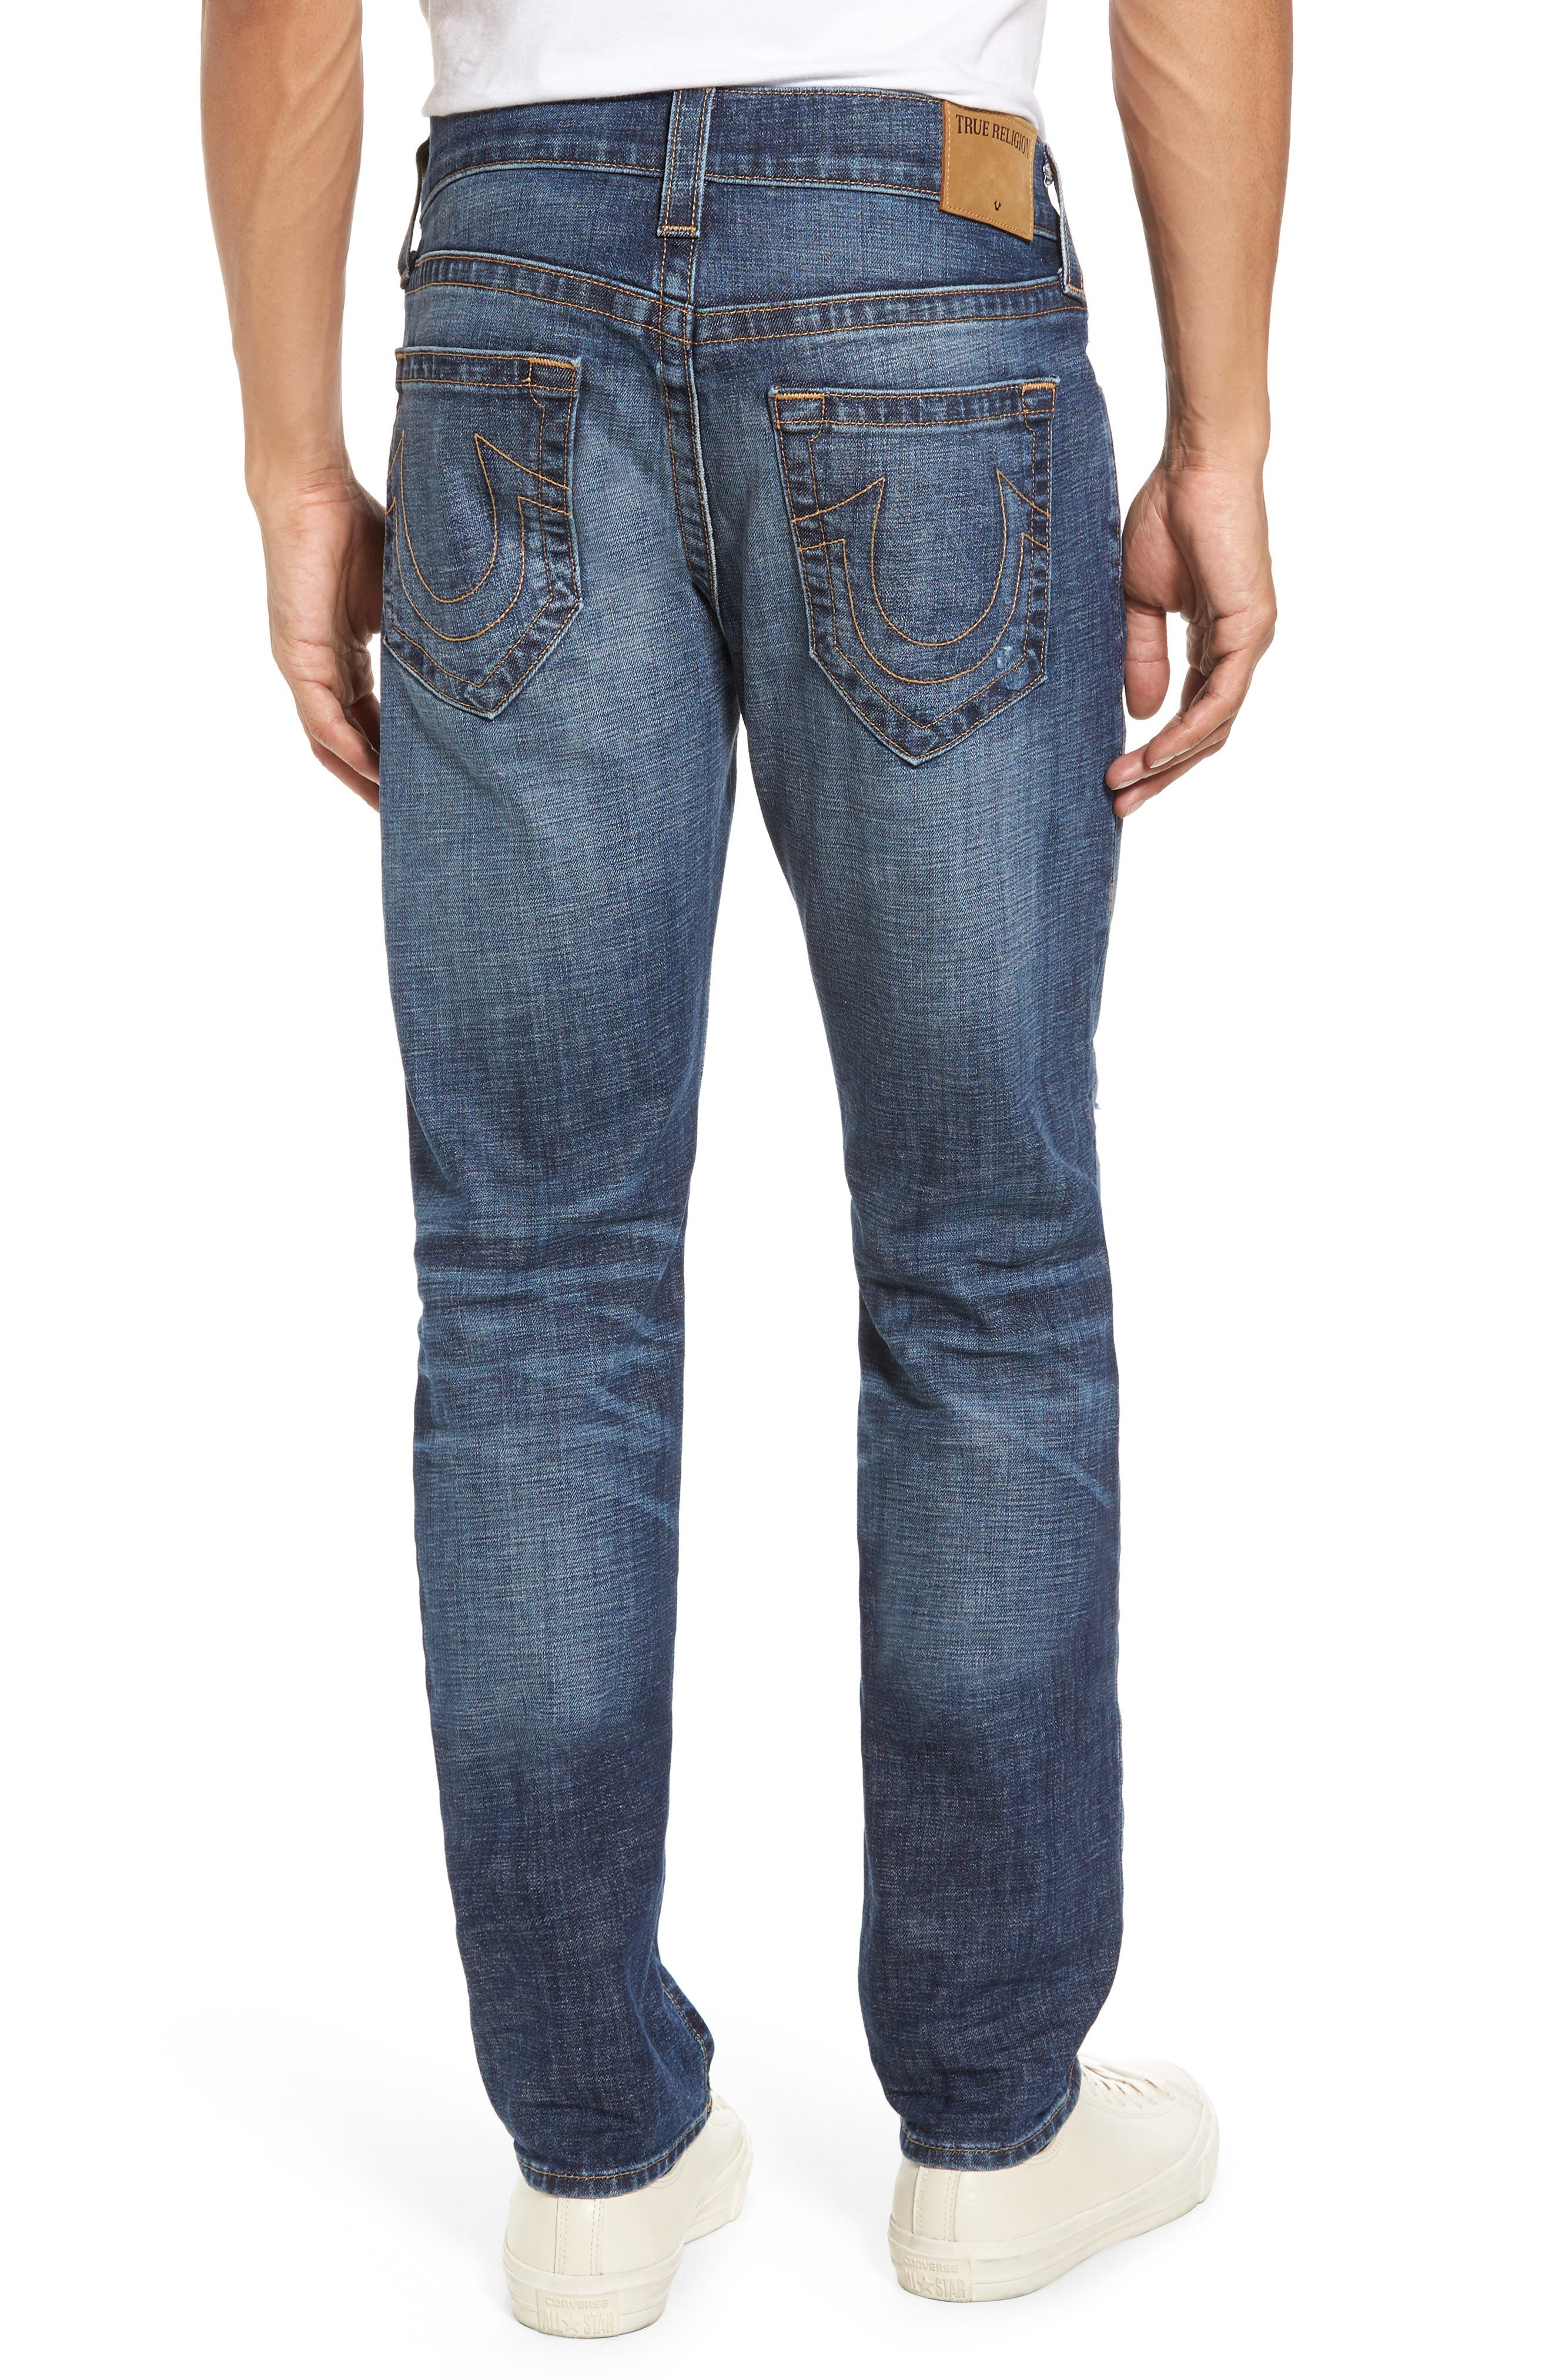 Rocco Skinny Fit Jeans,                             Alternate thumbnail 2, color,                             400